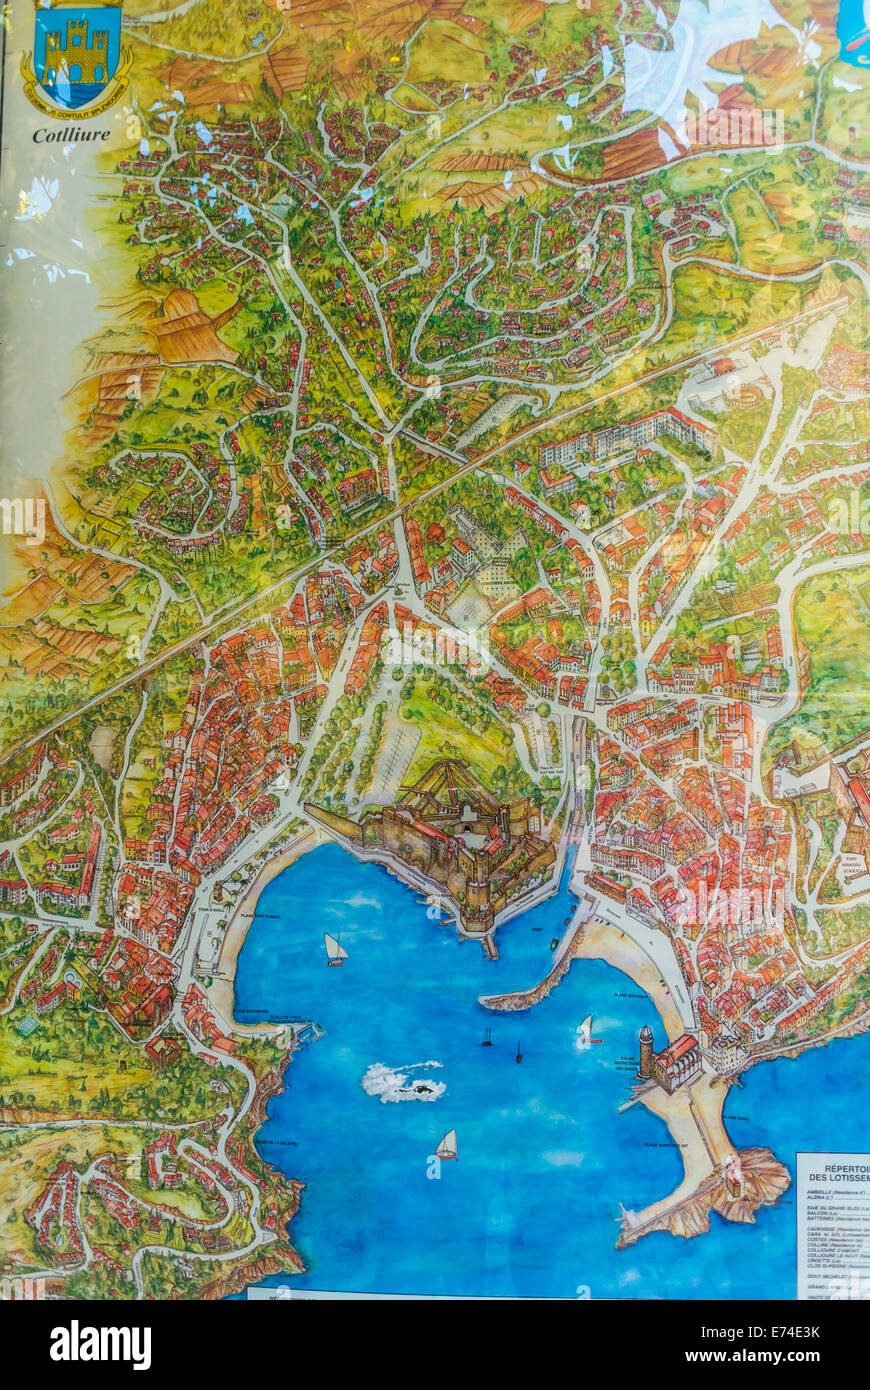 Collioure France Old French Map of Seaside Village near Perpignan